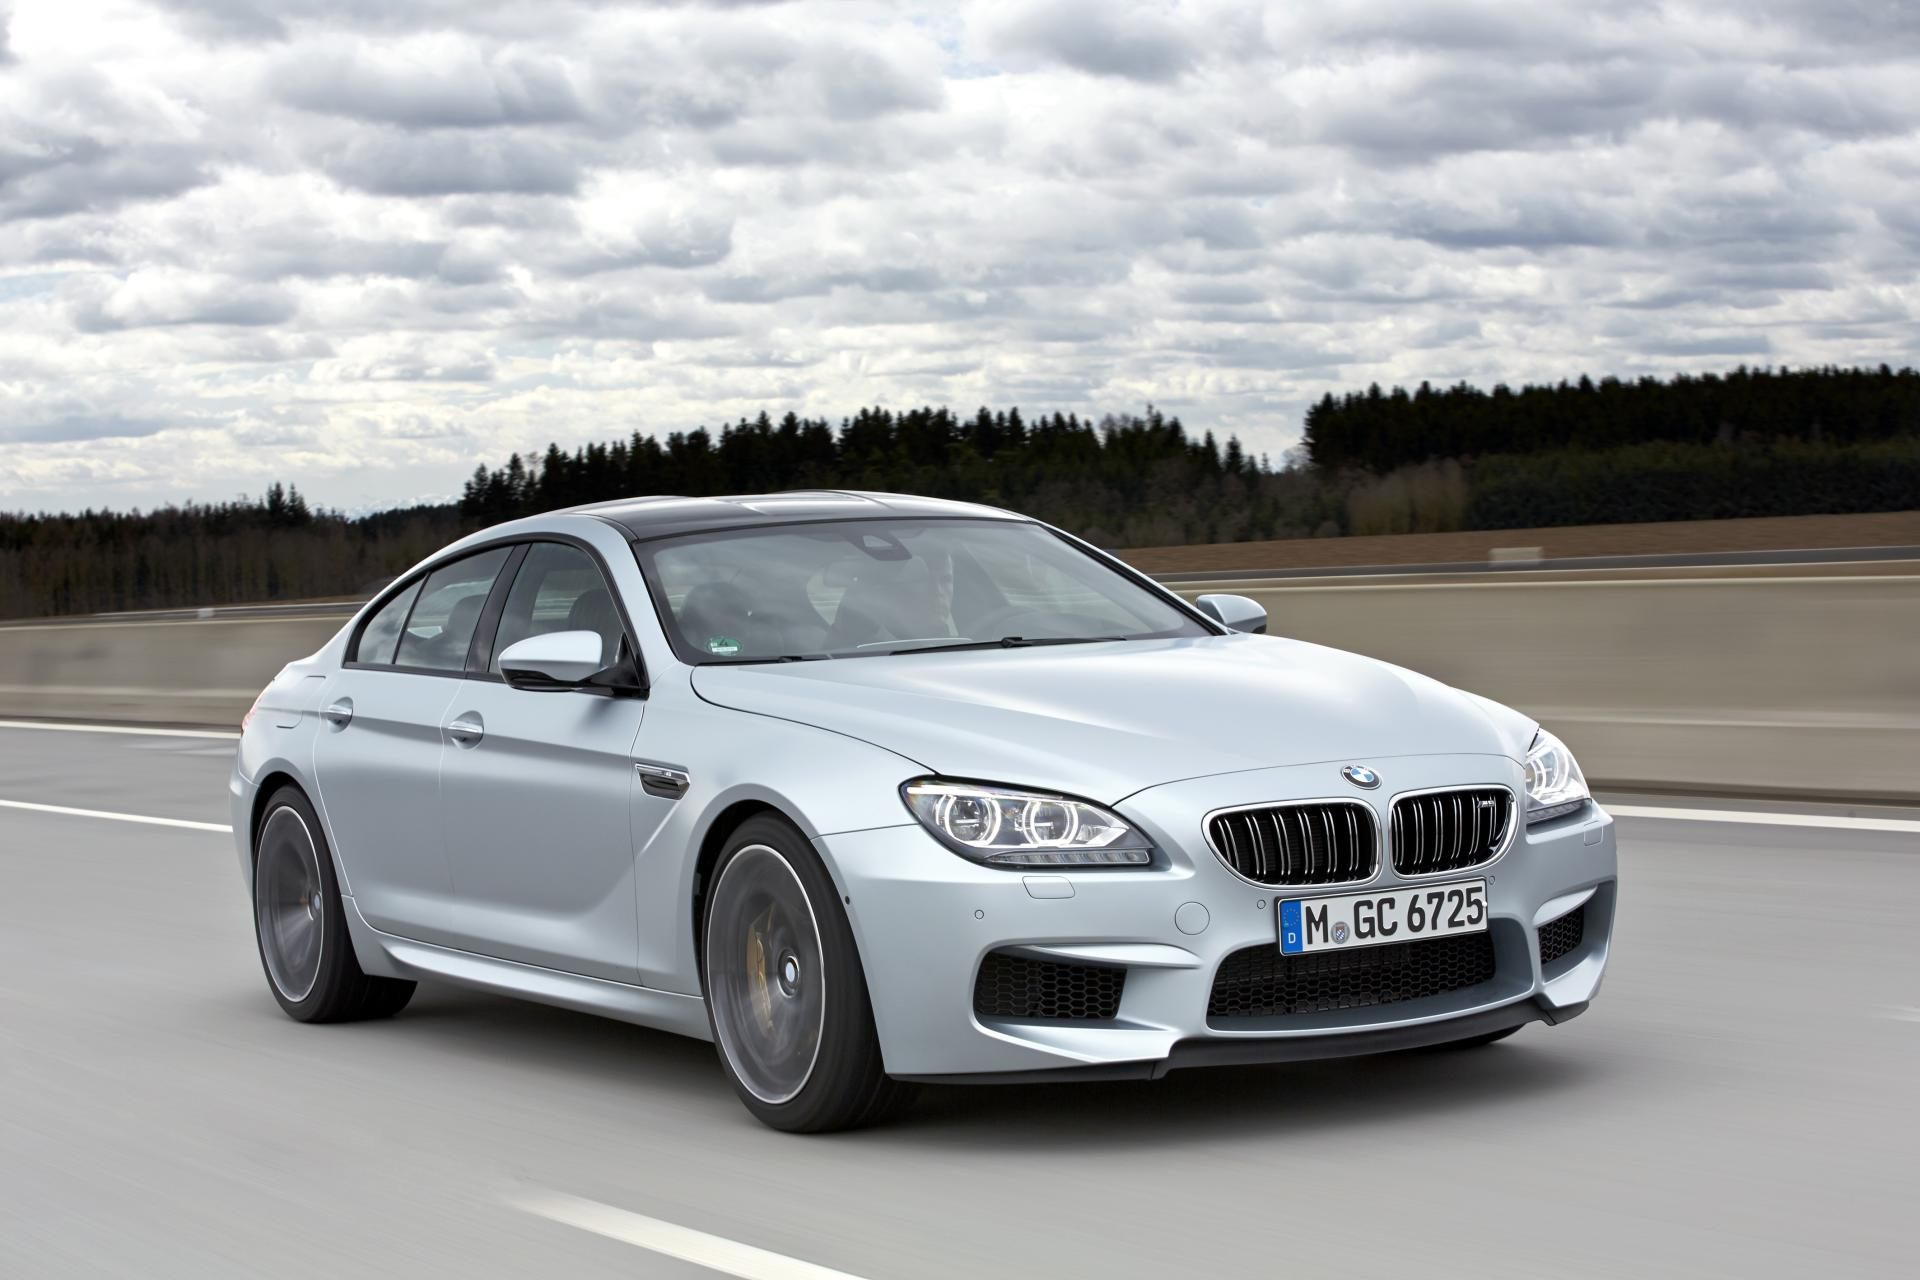 2014 bmw m6 gran coupe technical specifications and data engine dimensions and mechanical. Black Bedroom Furniture Sets. Home Design Ideas